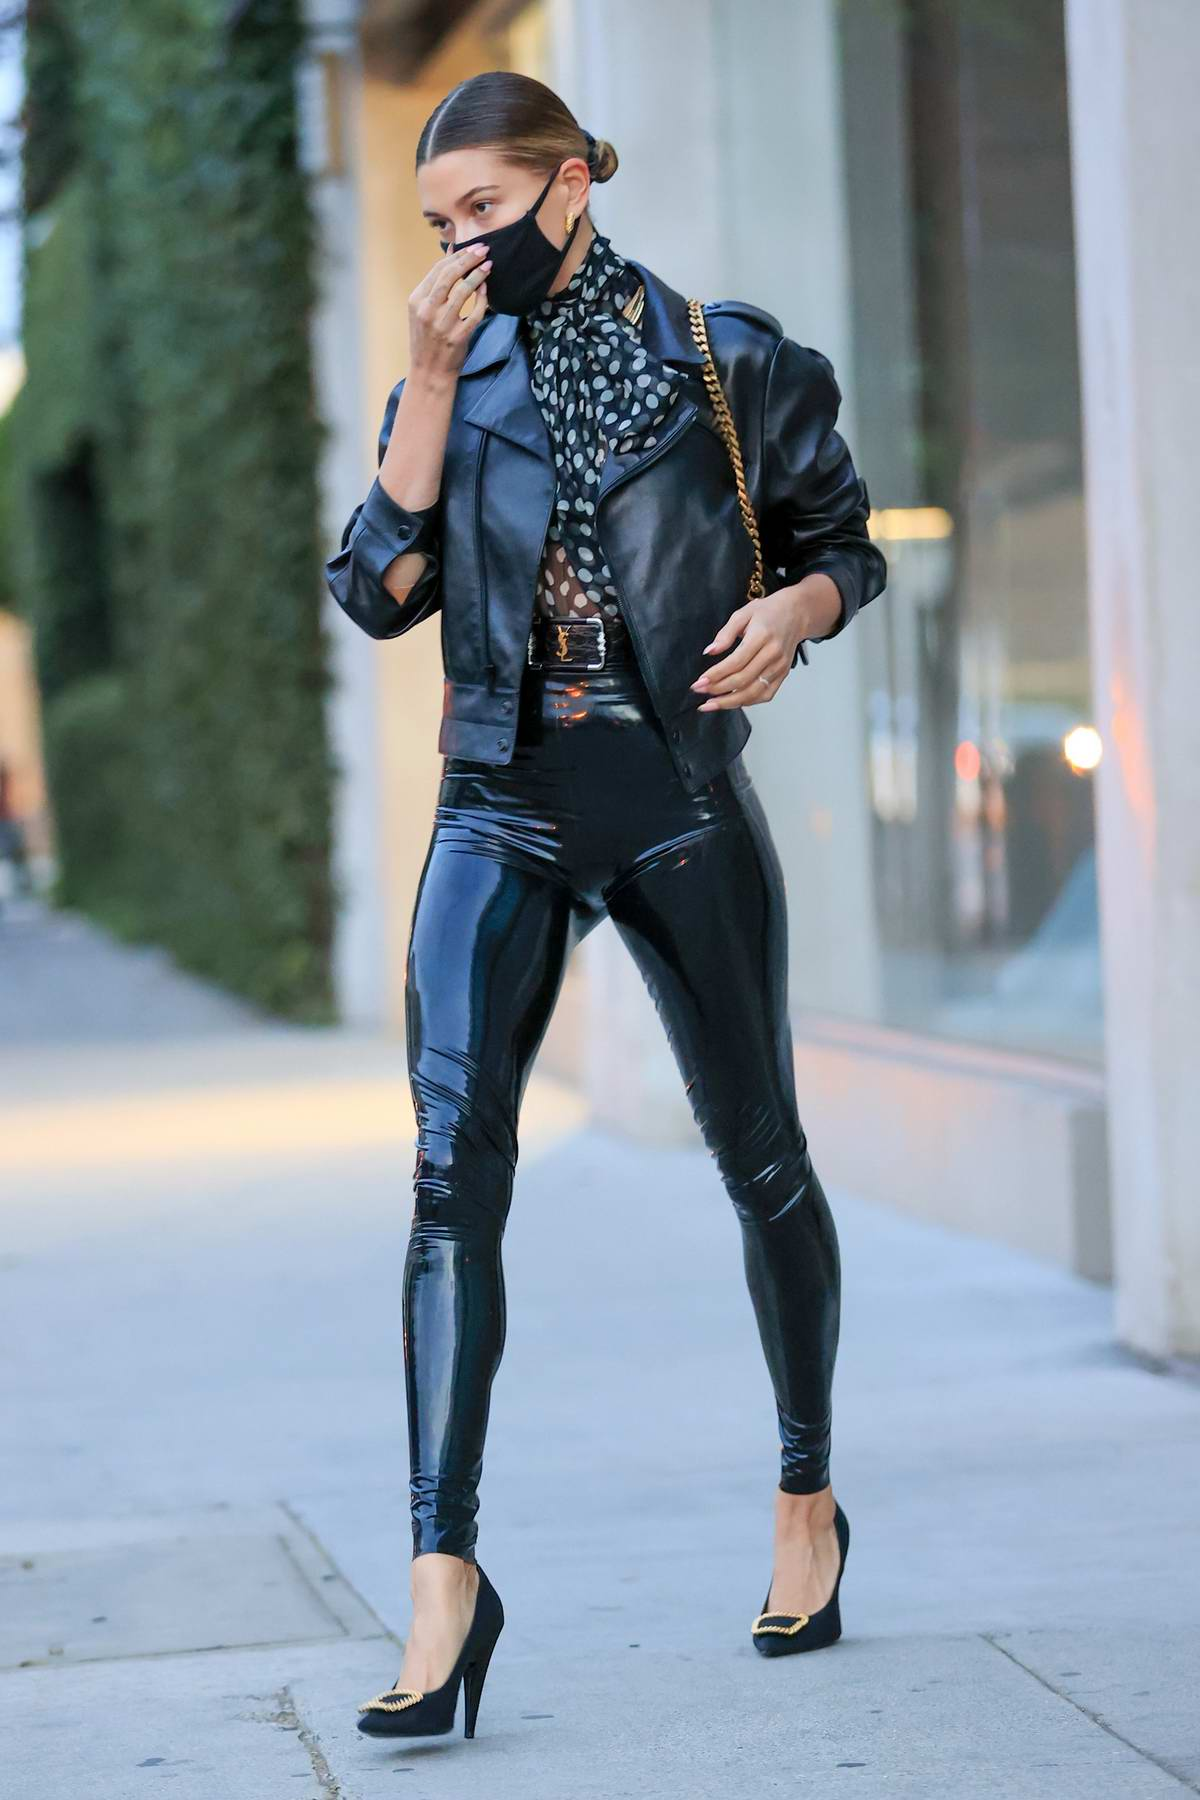 Hailey Bieber puts on a stylish display in a black latex YSL outfit while visiting stylist Maeve Reilly's office in Los Angeles